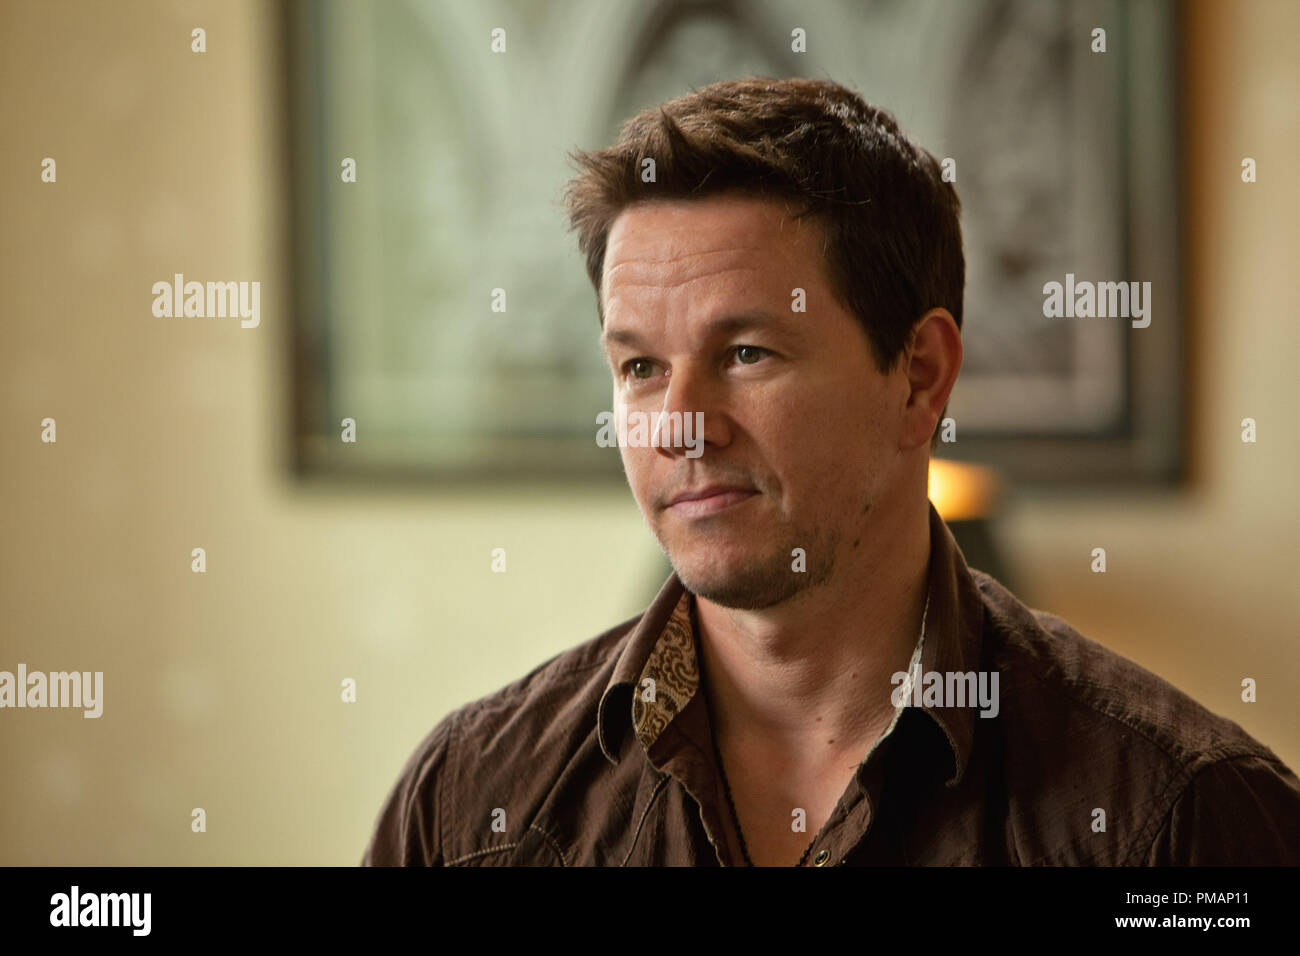 MARK WAHLBERG as U.S. naval intelligence officer Marcus 'Stig' Stigman in '2 Guns' - Stock Image